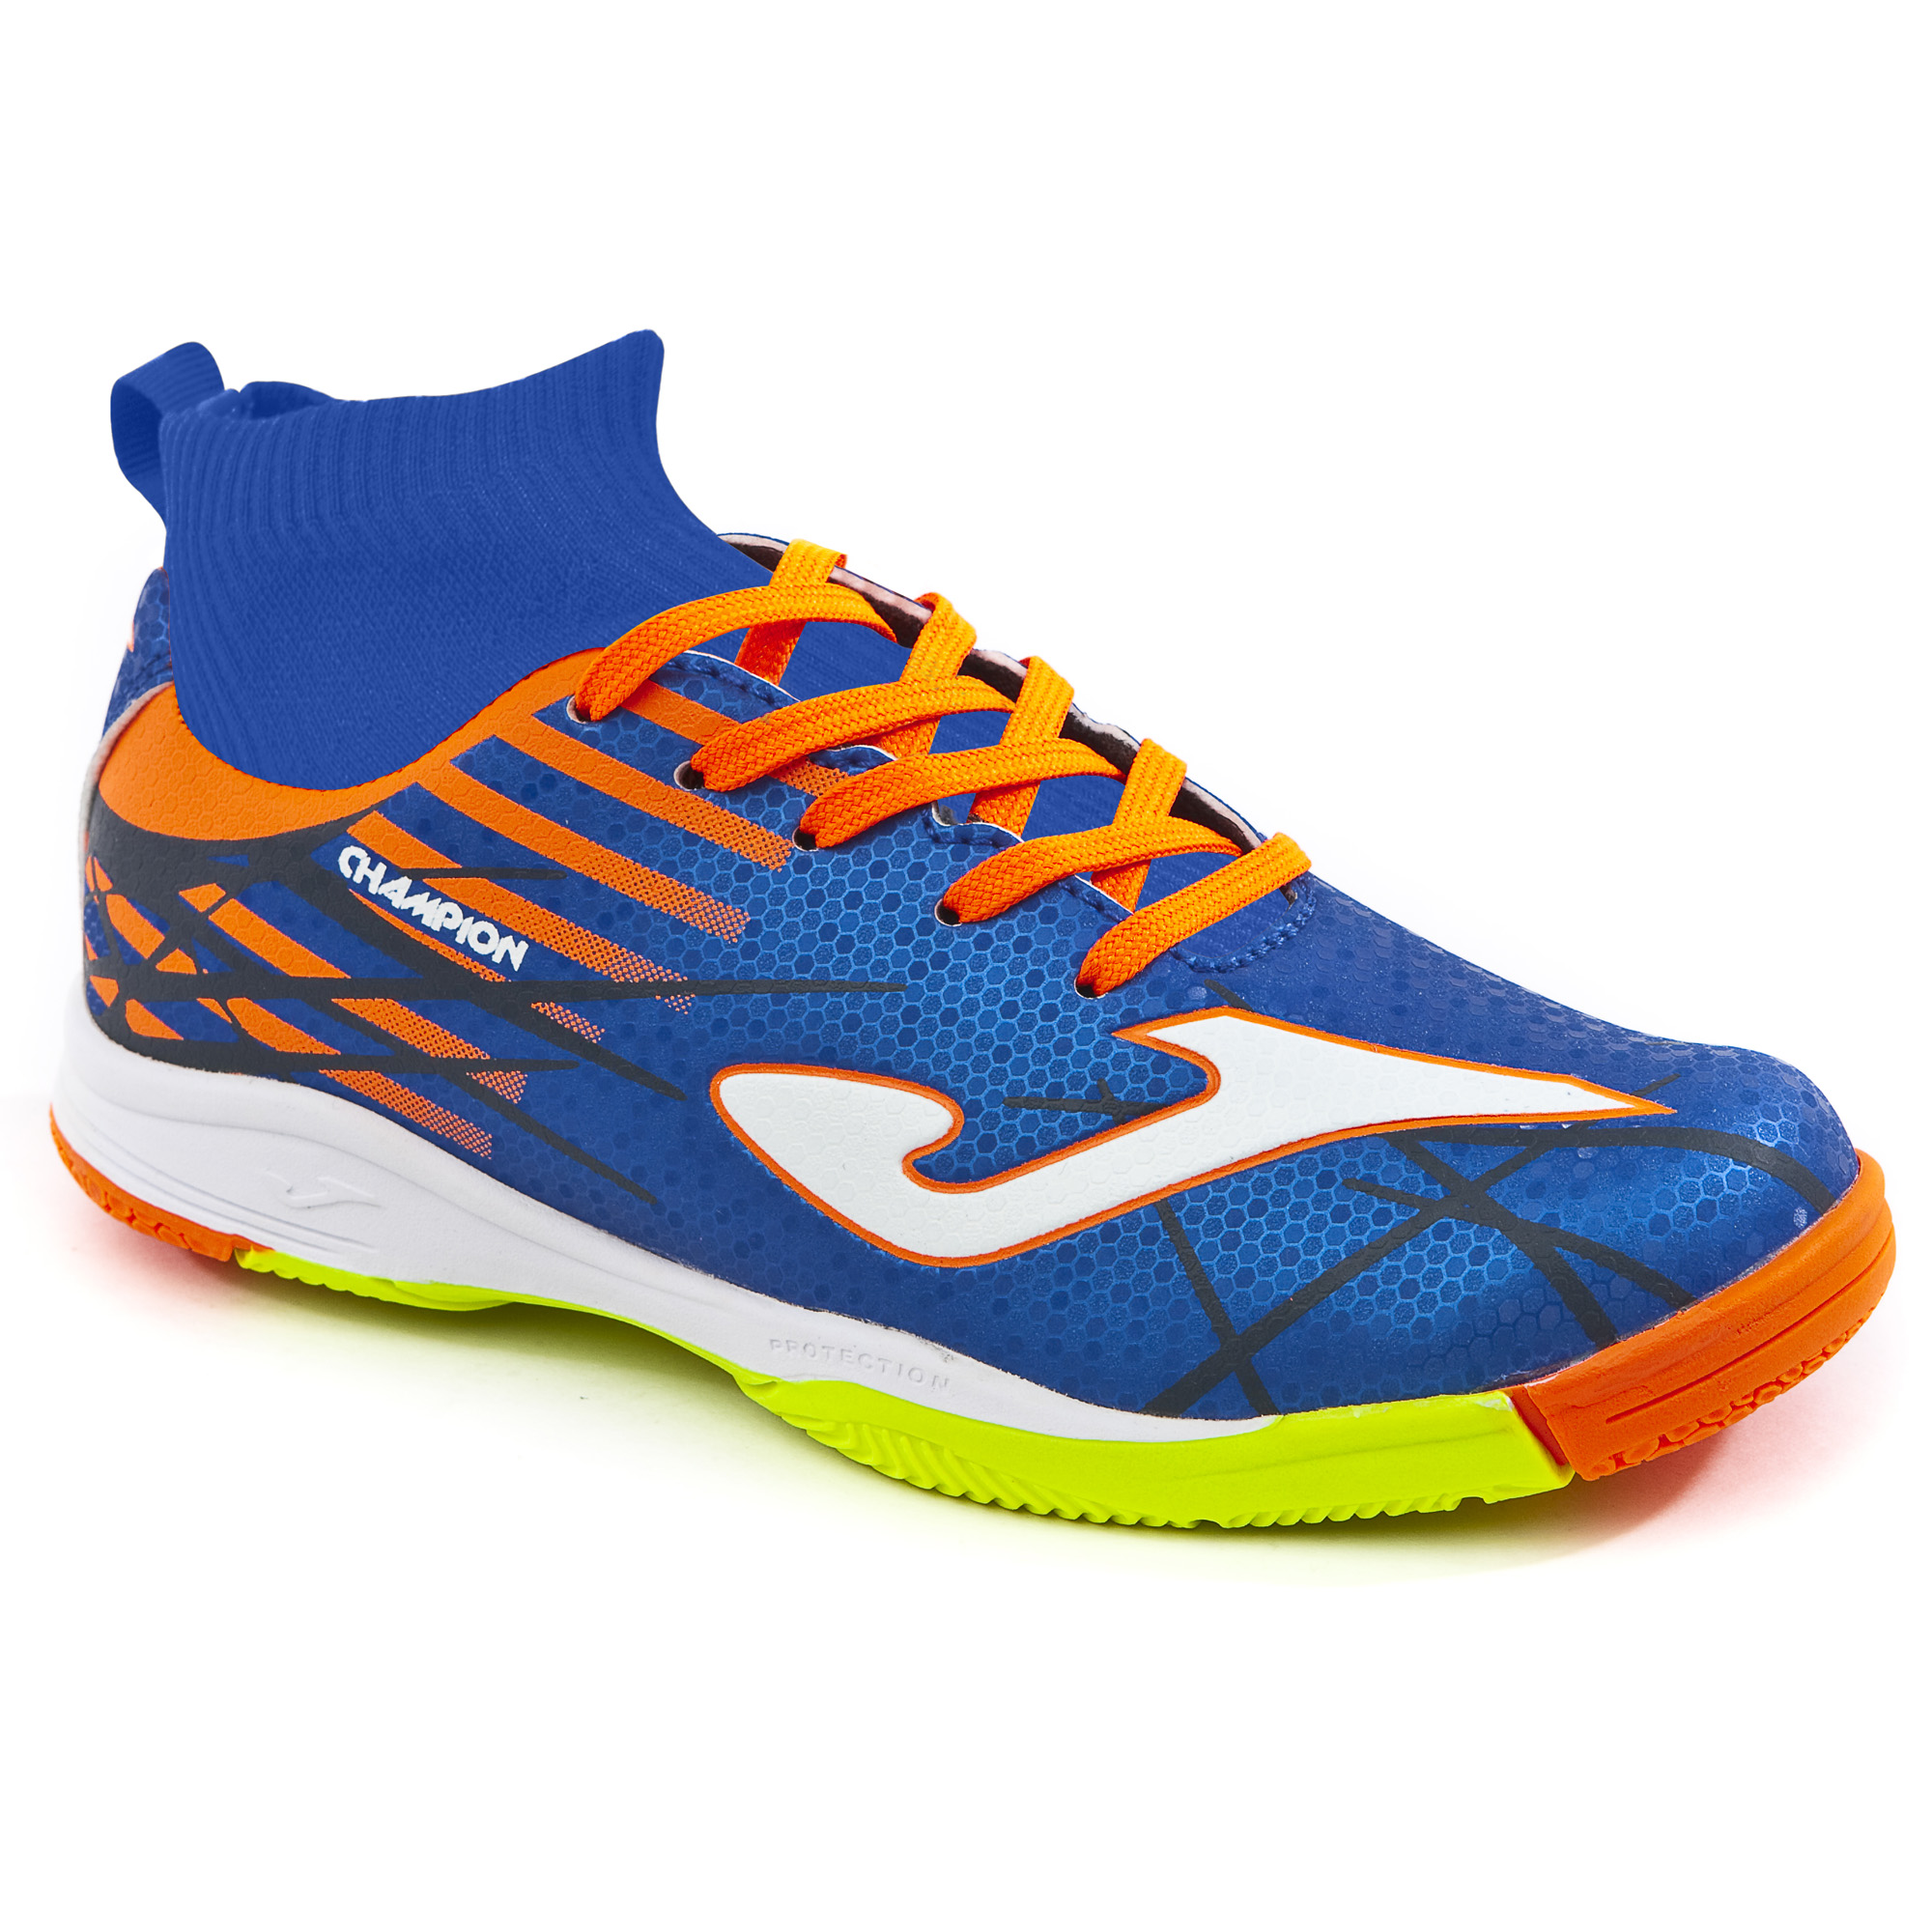 c2631375f35 CHAMPION JR 804 ROYAL BLUE SOCKET INDOOR - 1